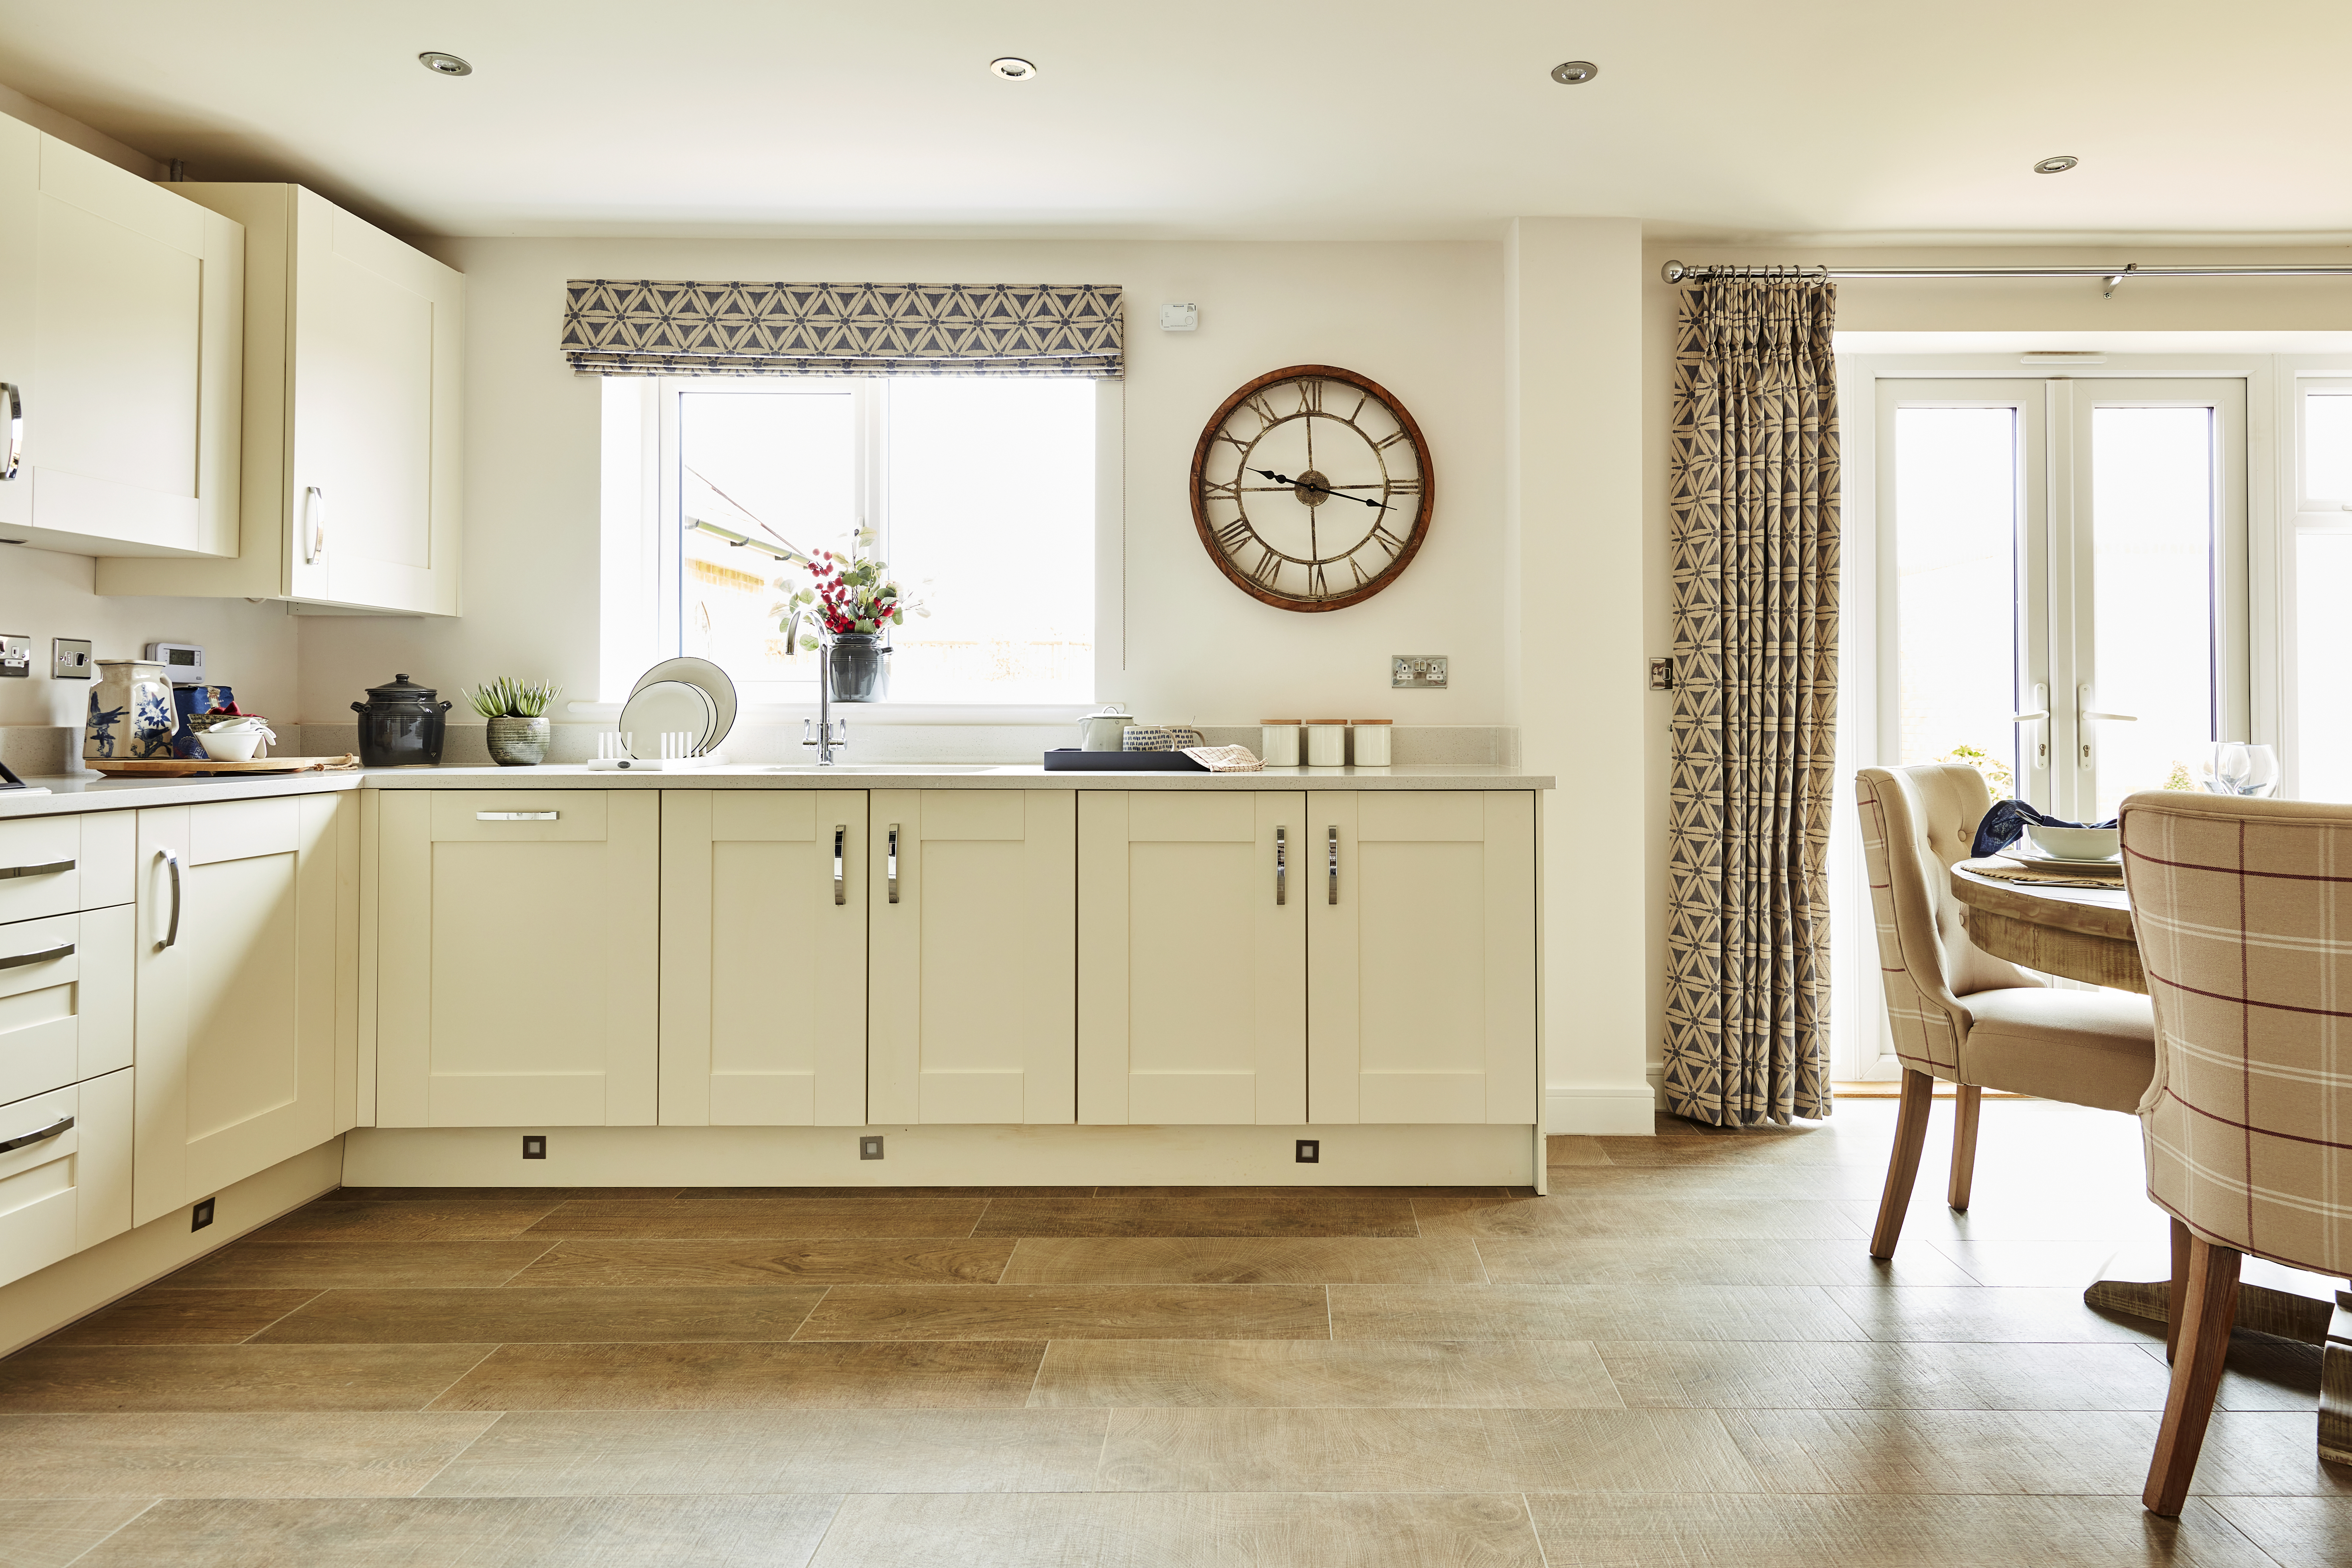 TW Mids Tudor Gate_Stratford upon Avon_NA46_Ransford_Kitchen_Dining